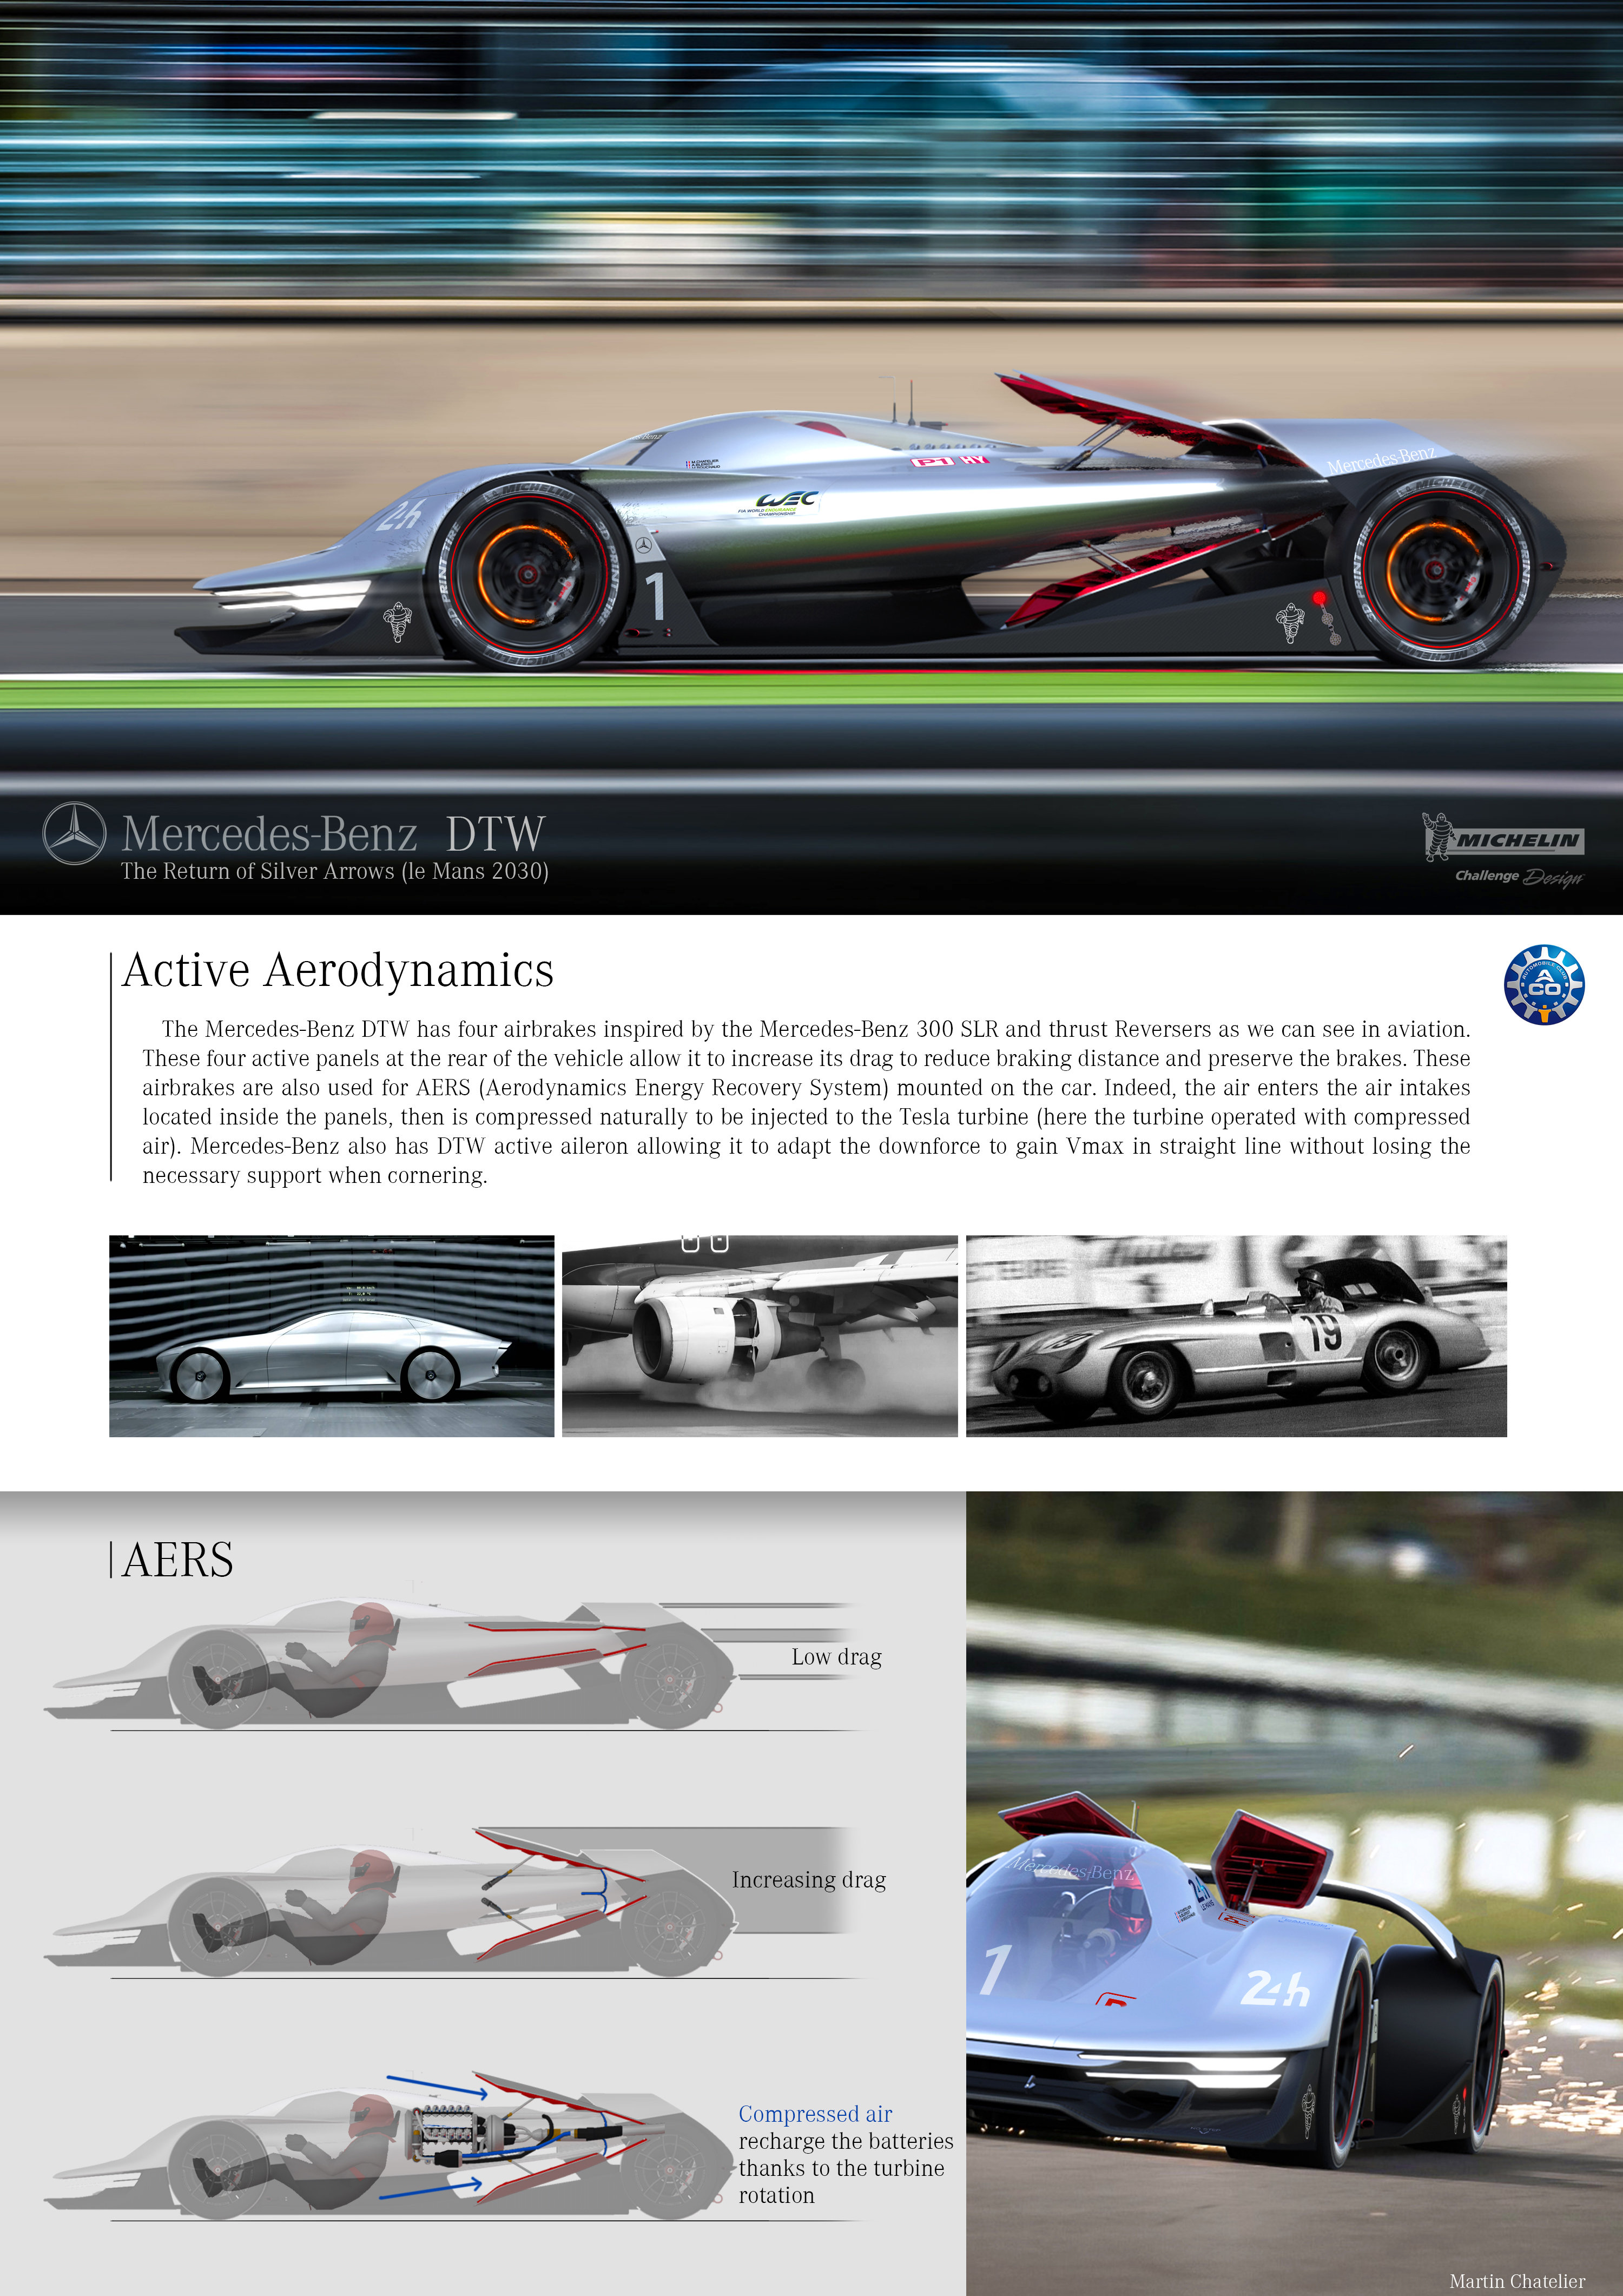 Mercedesbenz dtw by martin chatelier france michelin for Mercedes benz germany internship